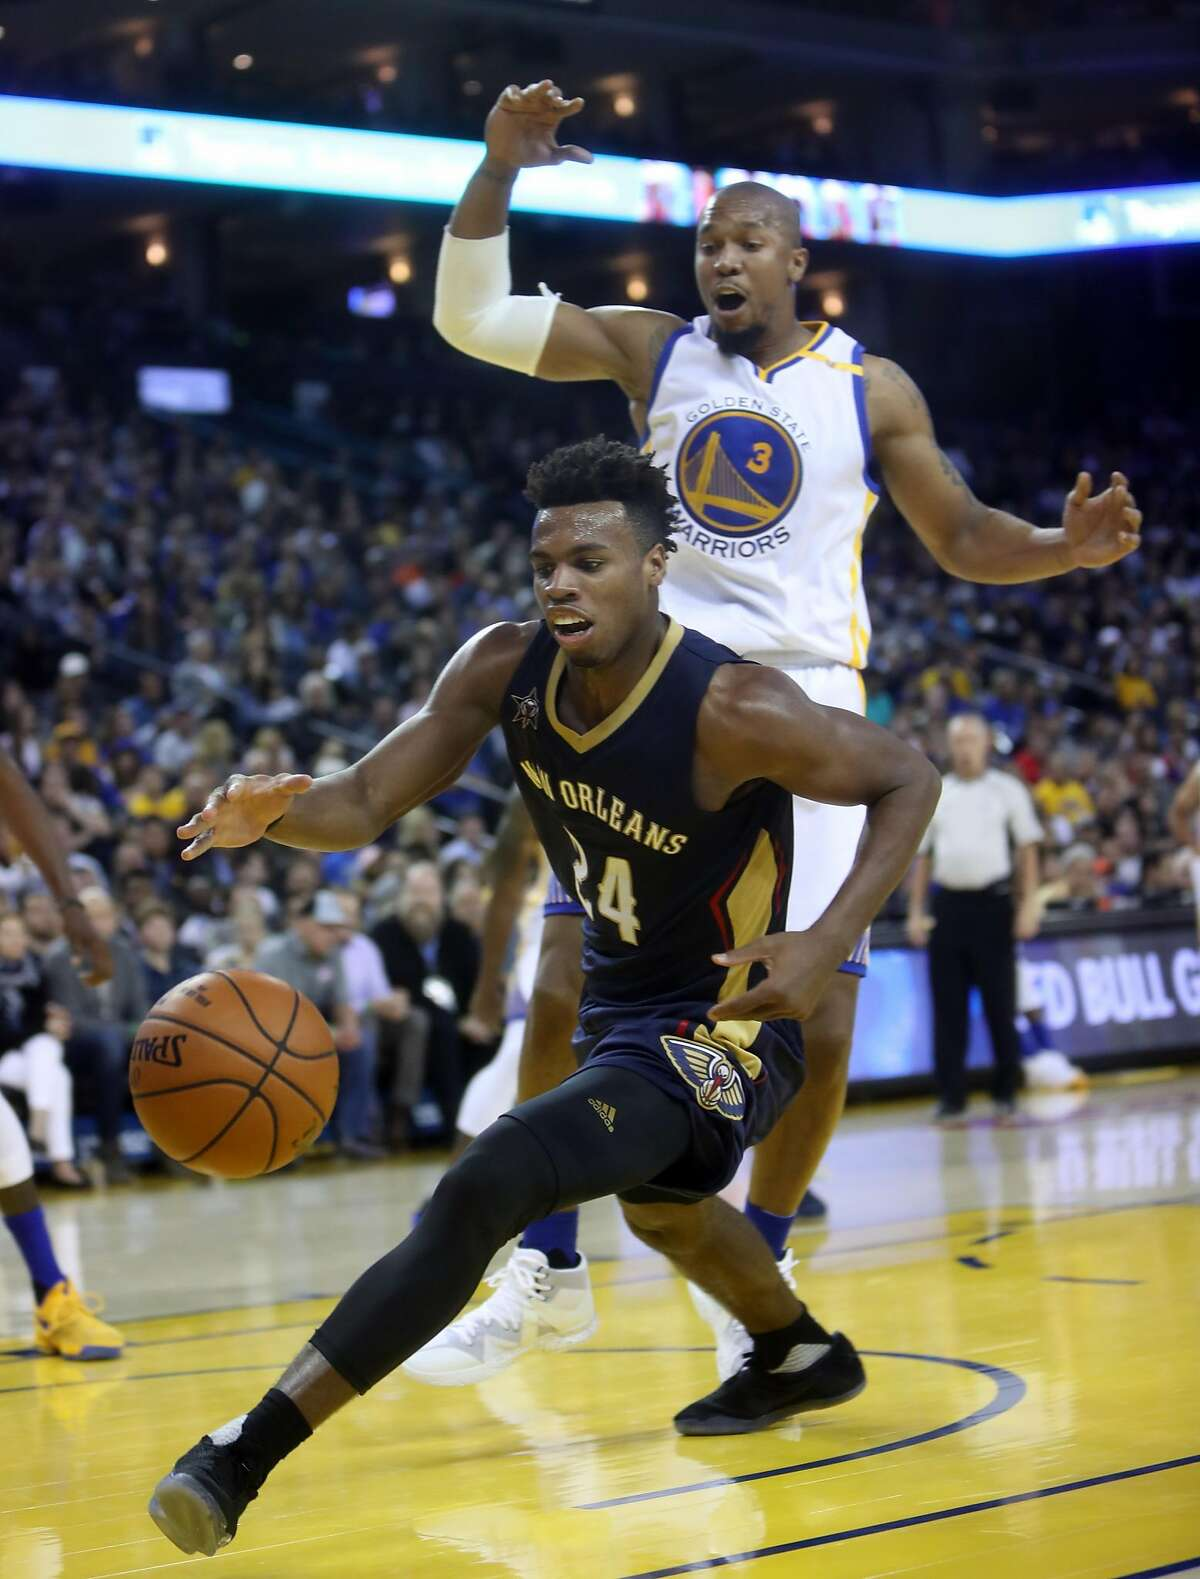 Golden State Warriors' David West watches New Orleans Pelicans' Bobby Hield chase a loose ball in 4th quarter of Warriors' 116-106 win during NBA game at Oracle Arena in Oakland, Calif., on Monday, November 7, 2016.